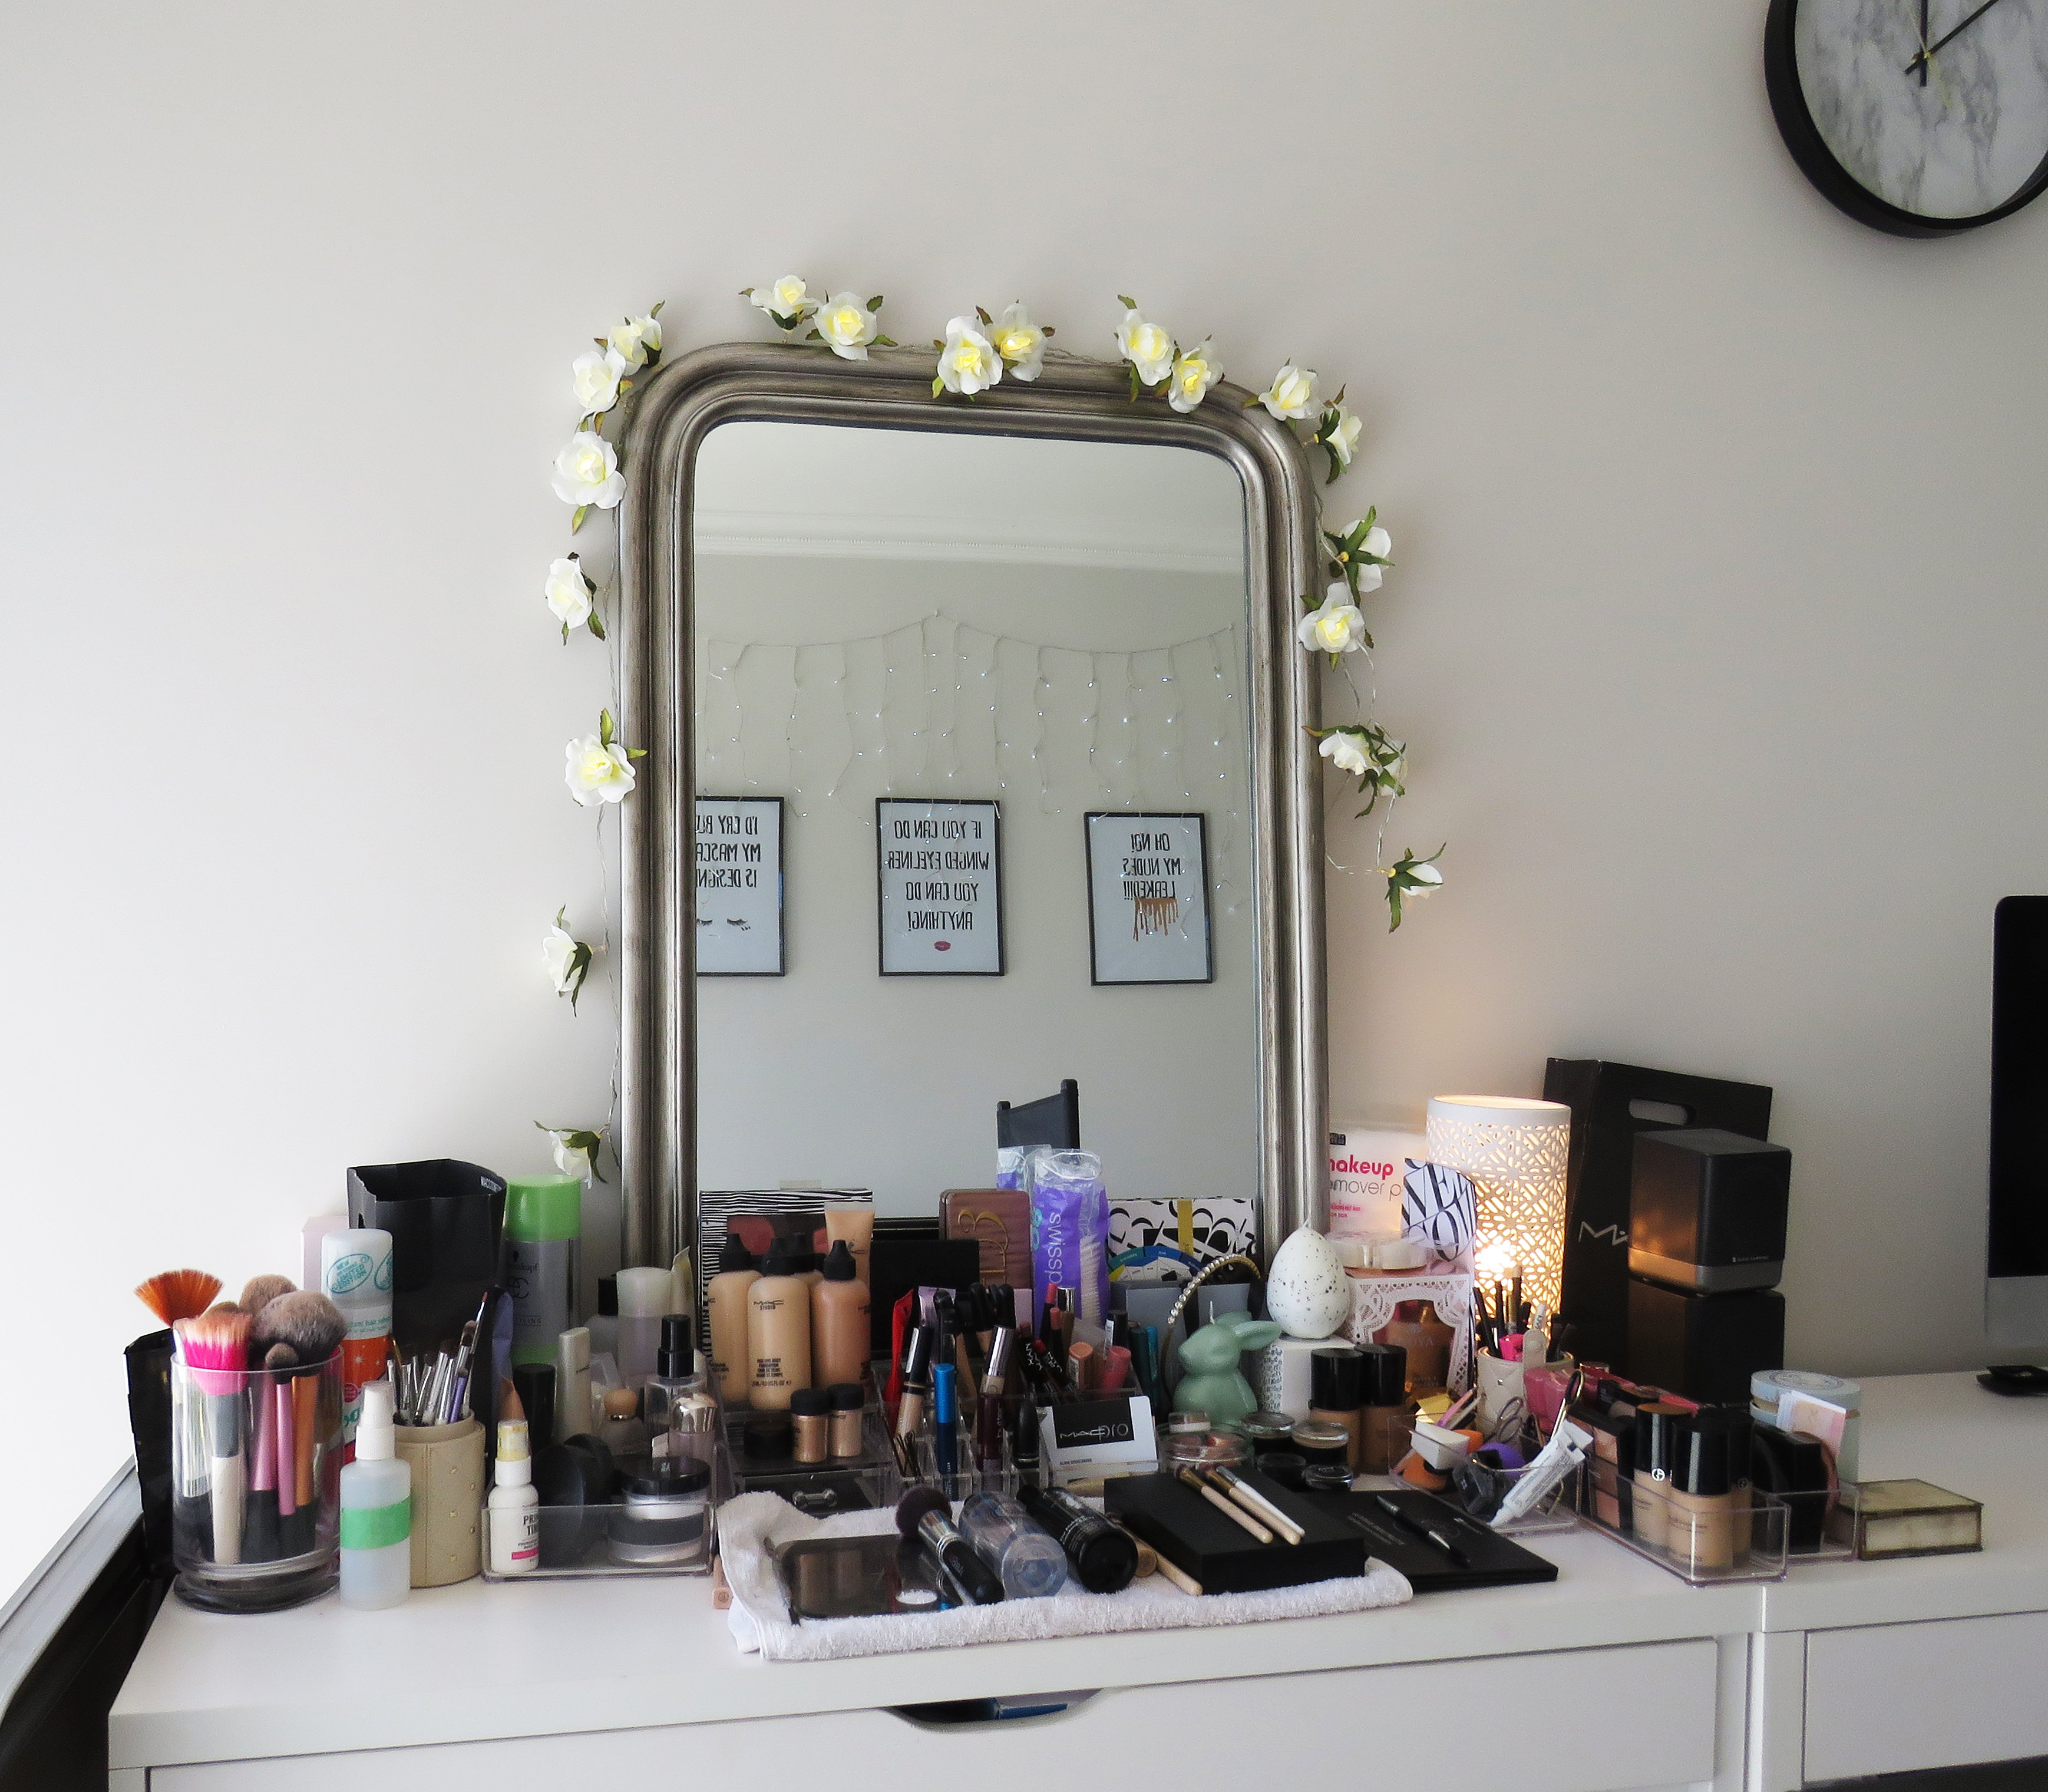 The makeup school ponsonby auckland is considered to be the foremost makeup school in new zealand